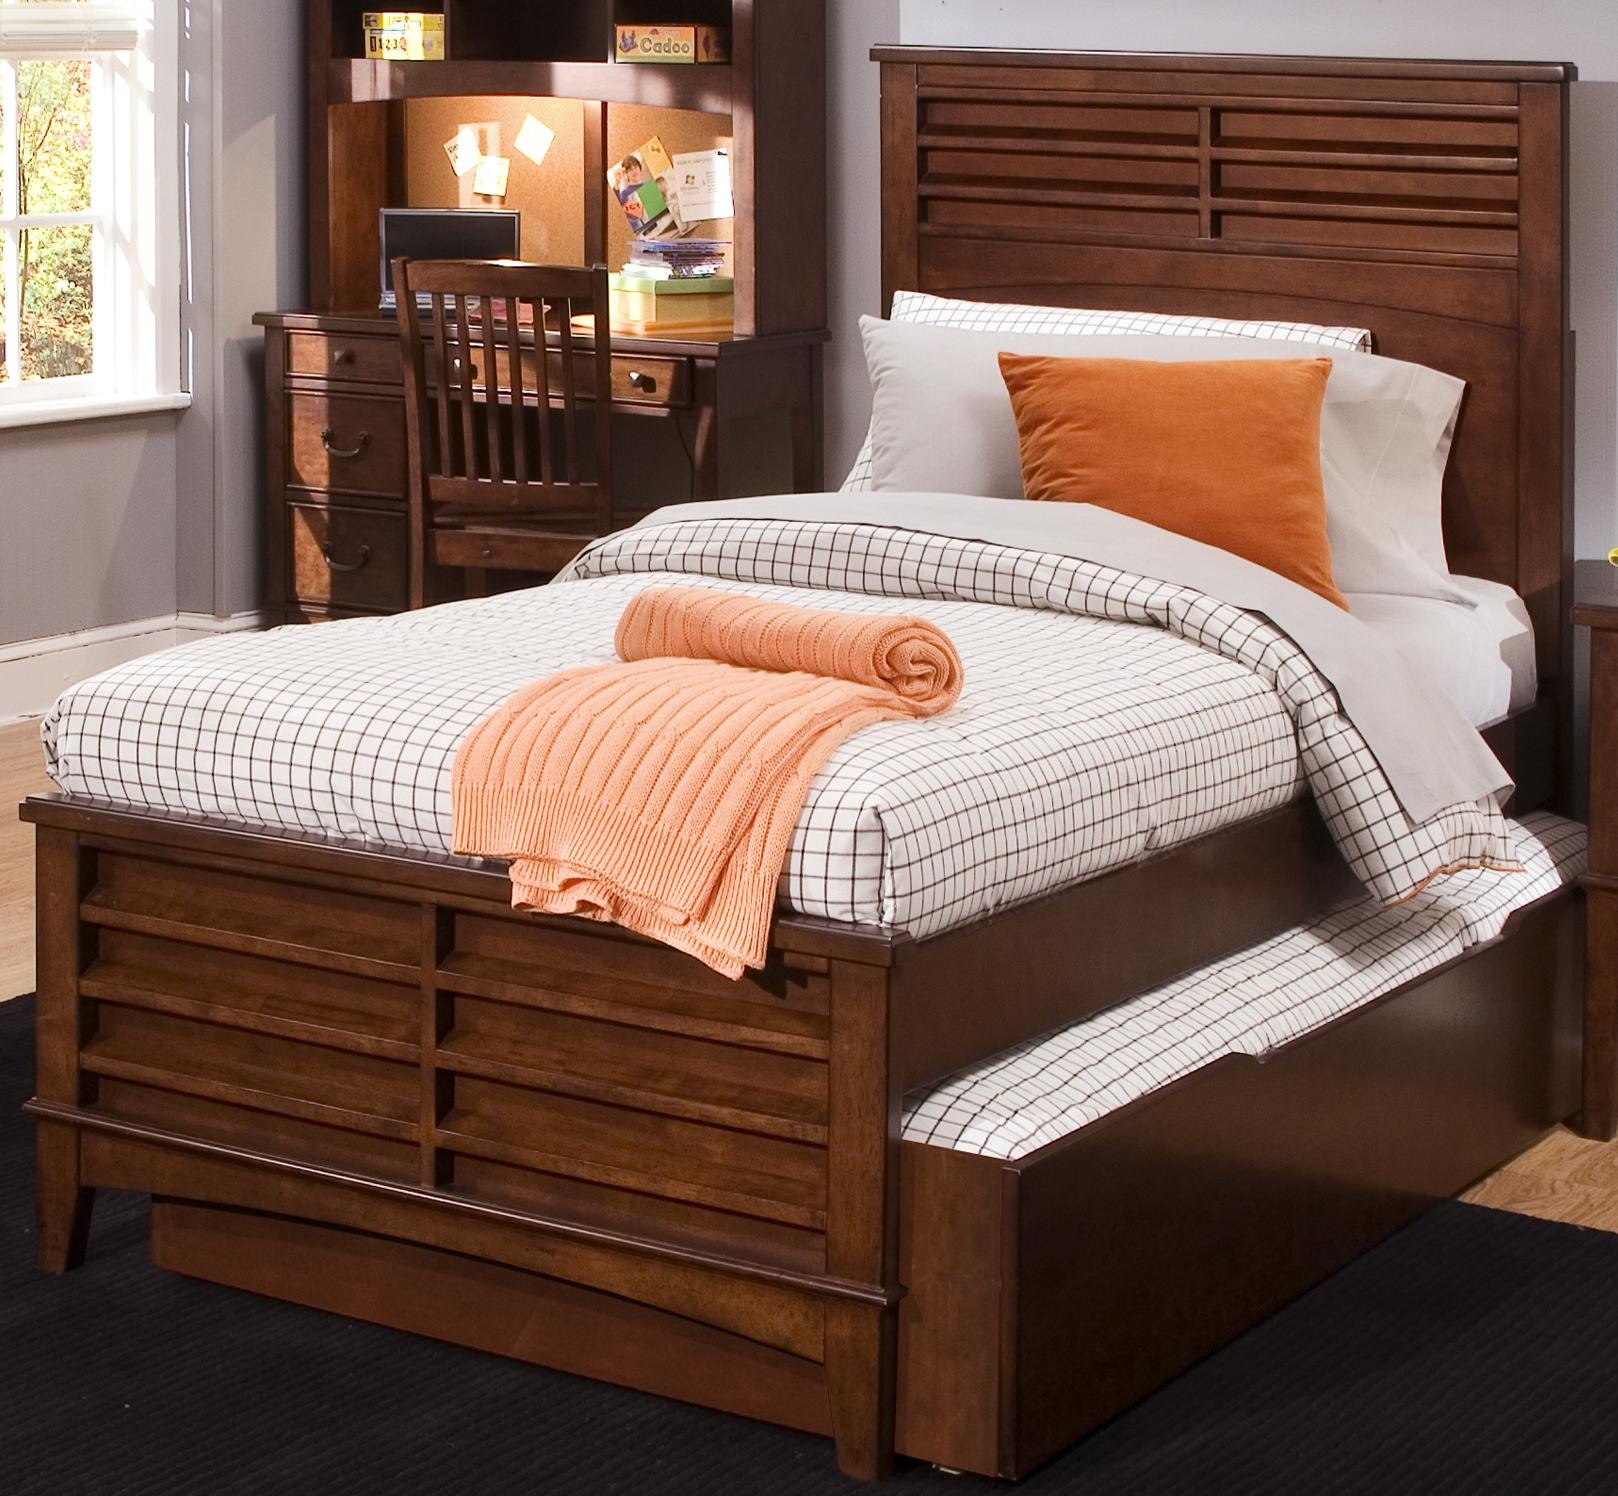 Liberty Furniture Chelsea Square Youth Twin Panel Bed - Item Number: 628-YBR-SET87